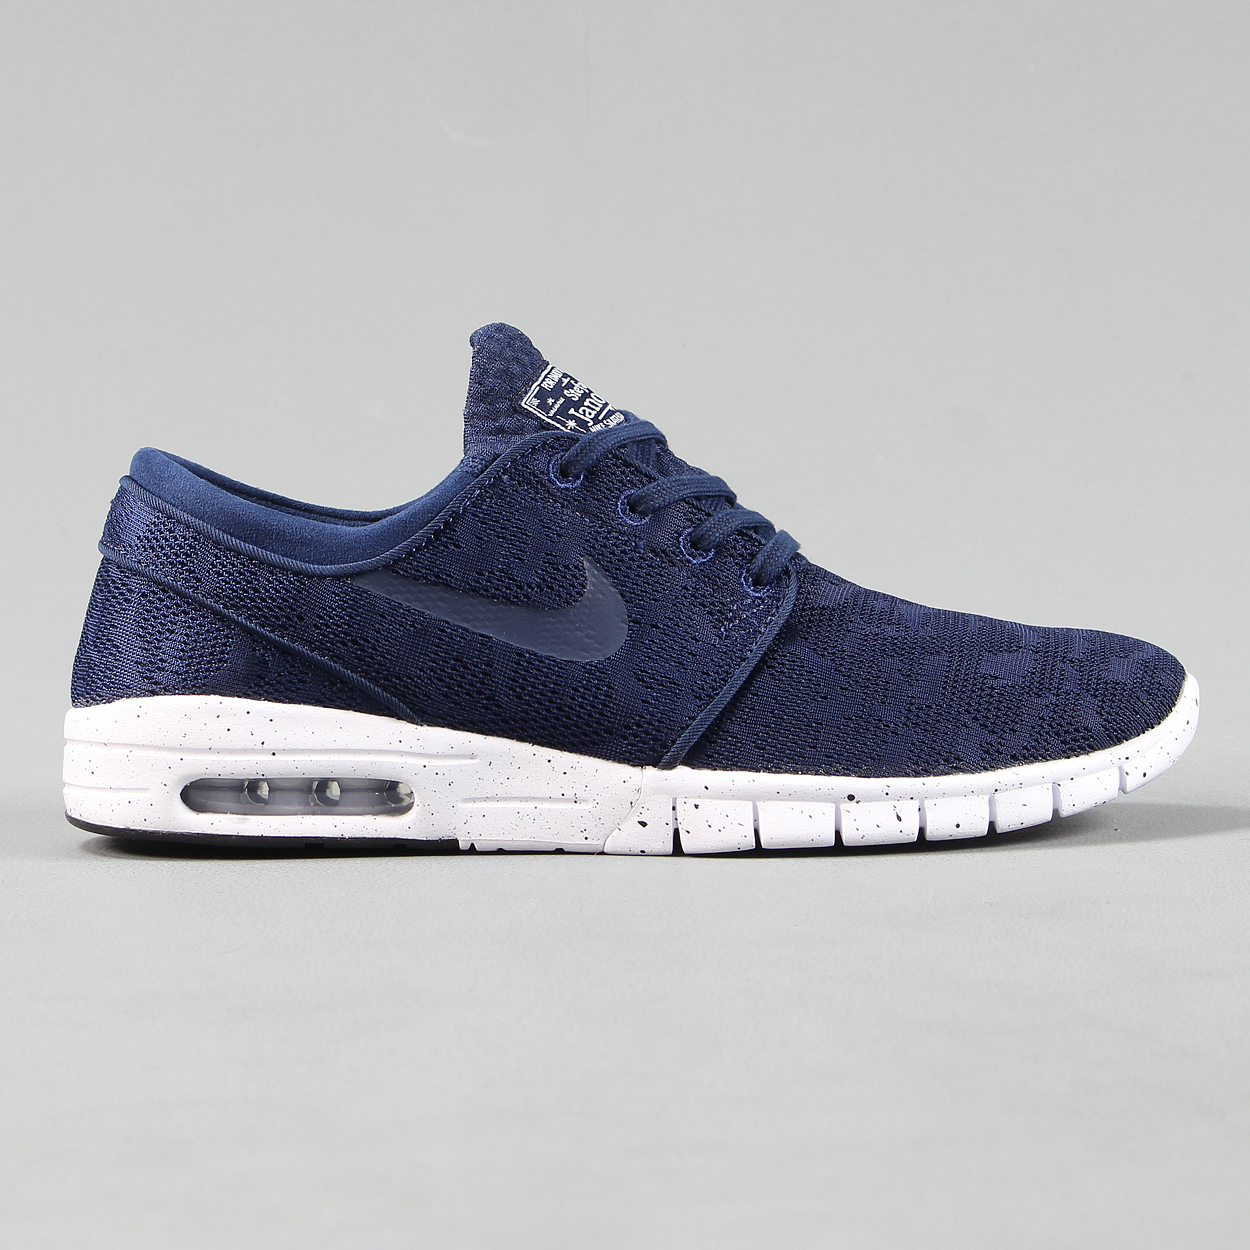 buy popular 24a13 6c09b red white and blue stefan janoski Nike ...